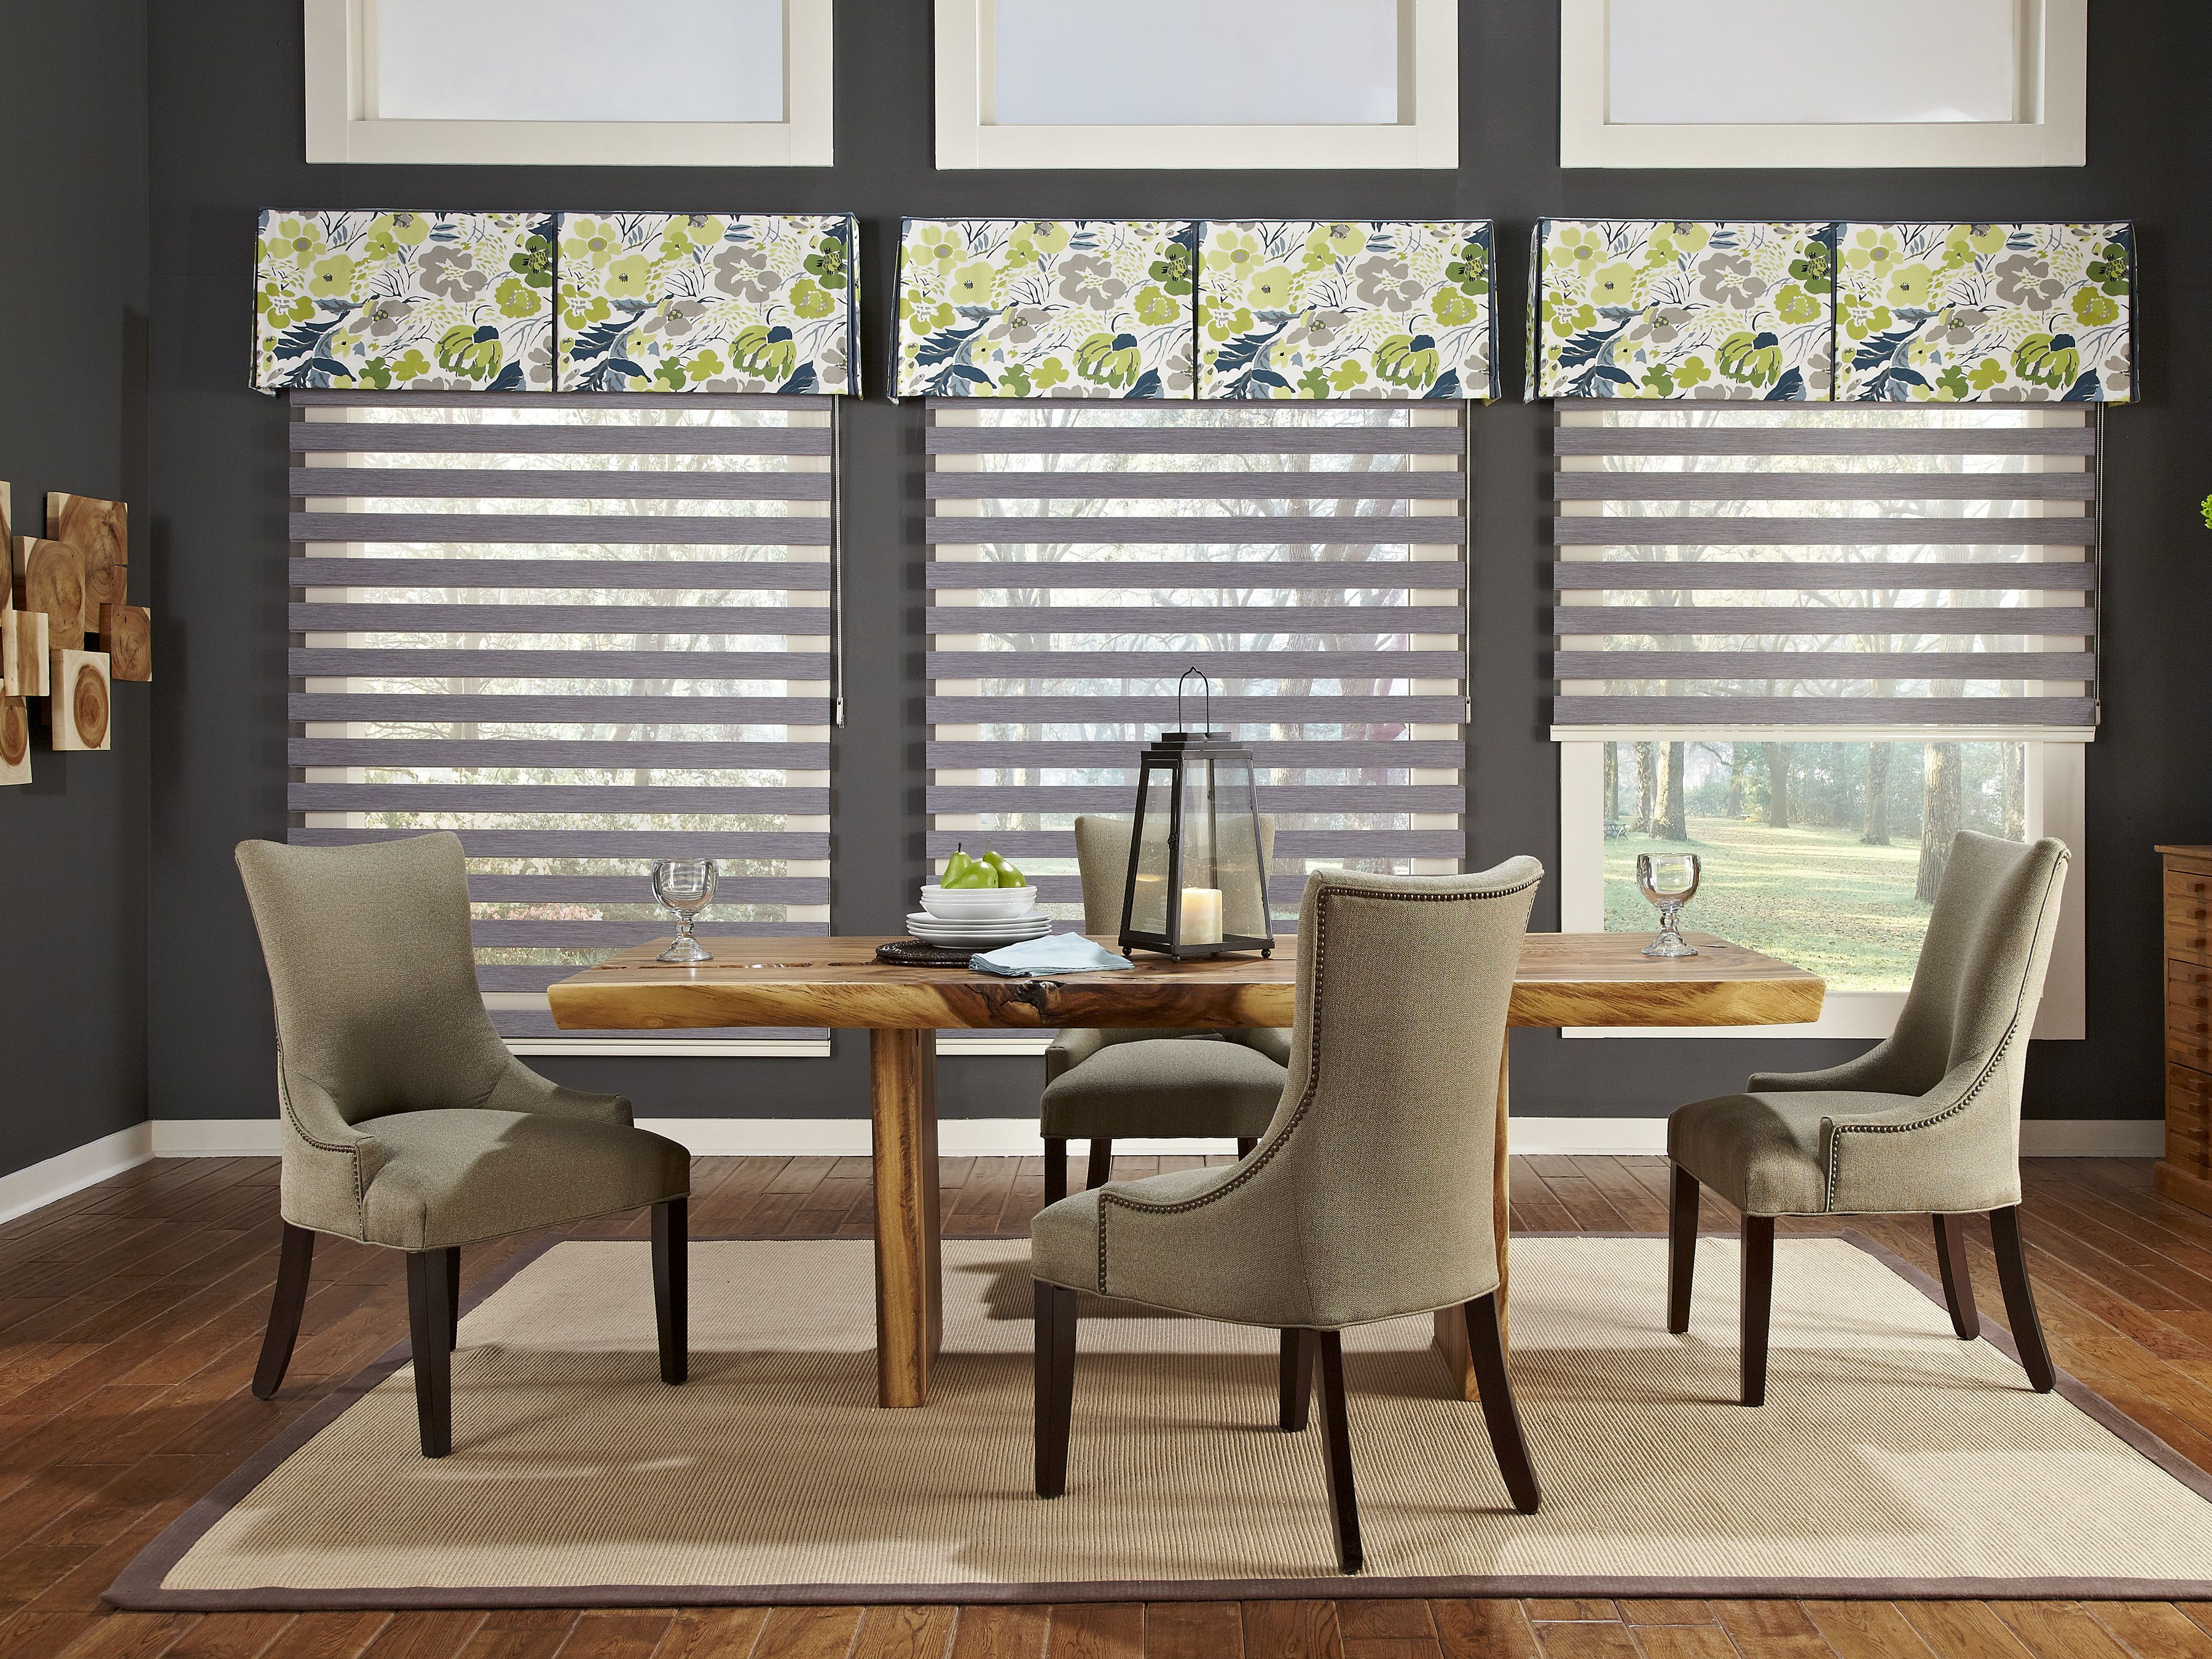 Unique Kitchen Window Treatment with Rectilinear Grey Lines and Floral Valance